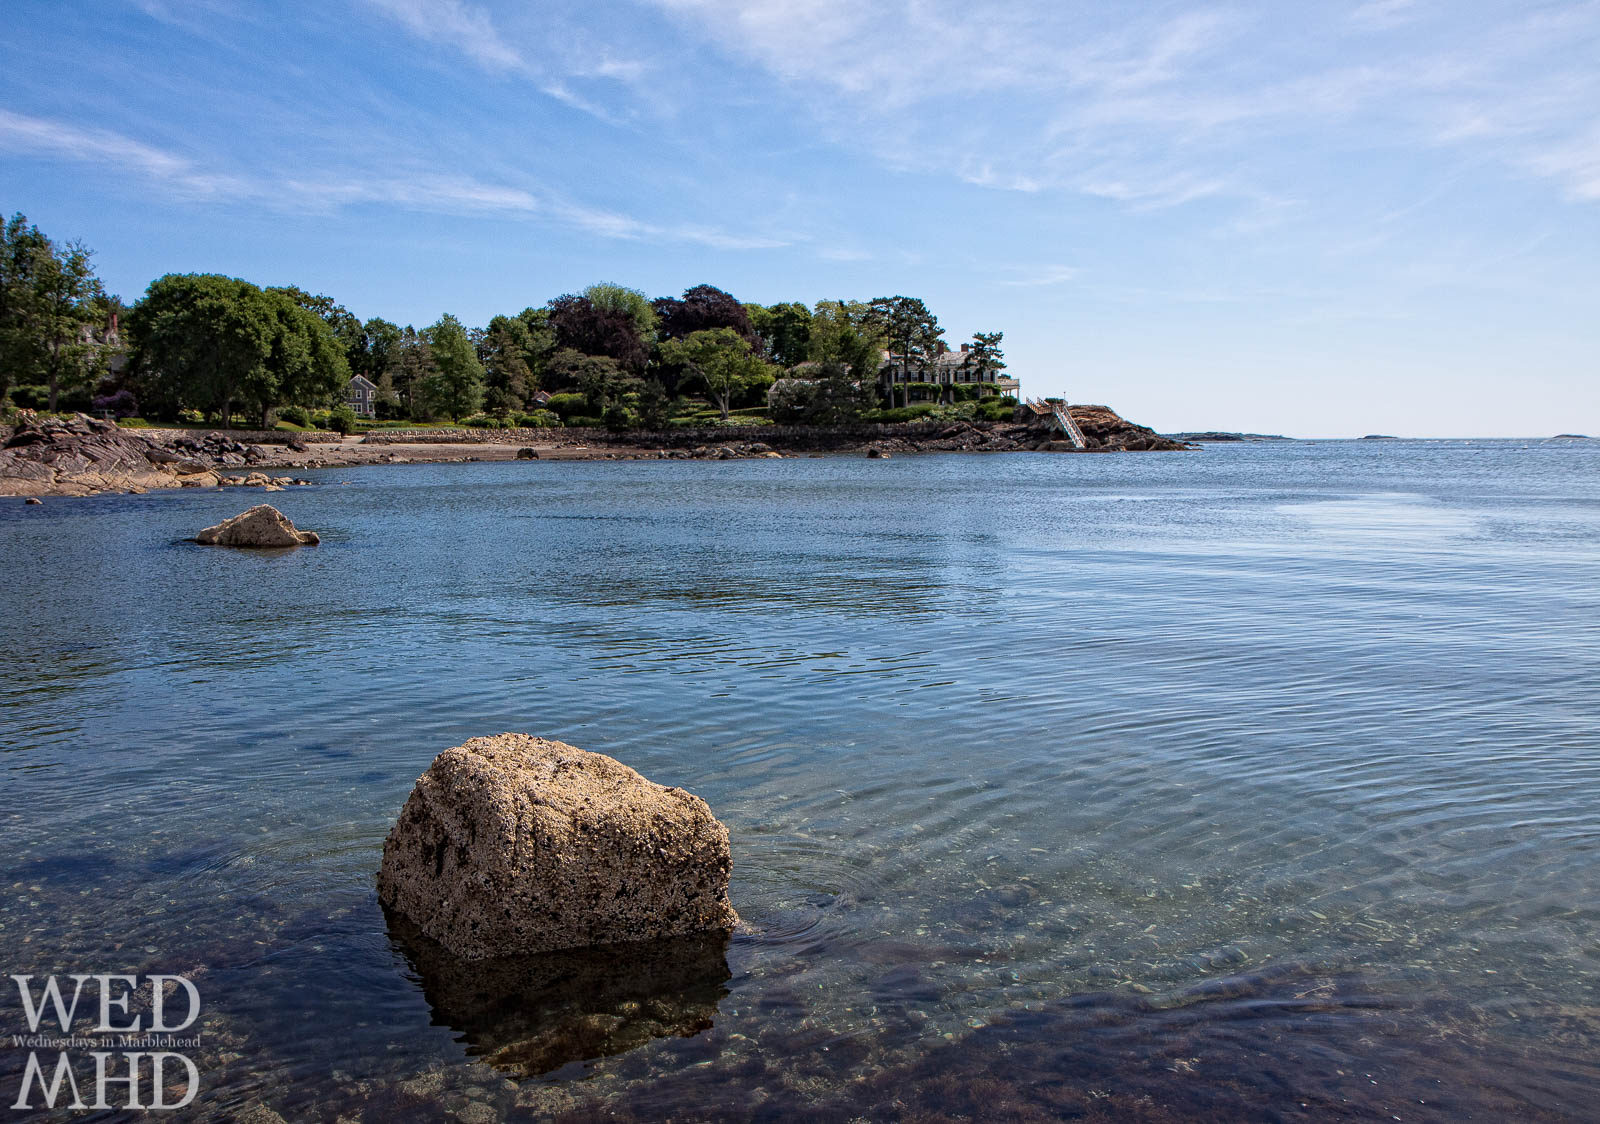 Grace Oliver Beach at high tide on an early Summer day in Marblehead